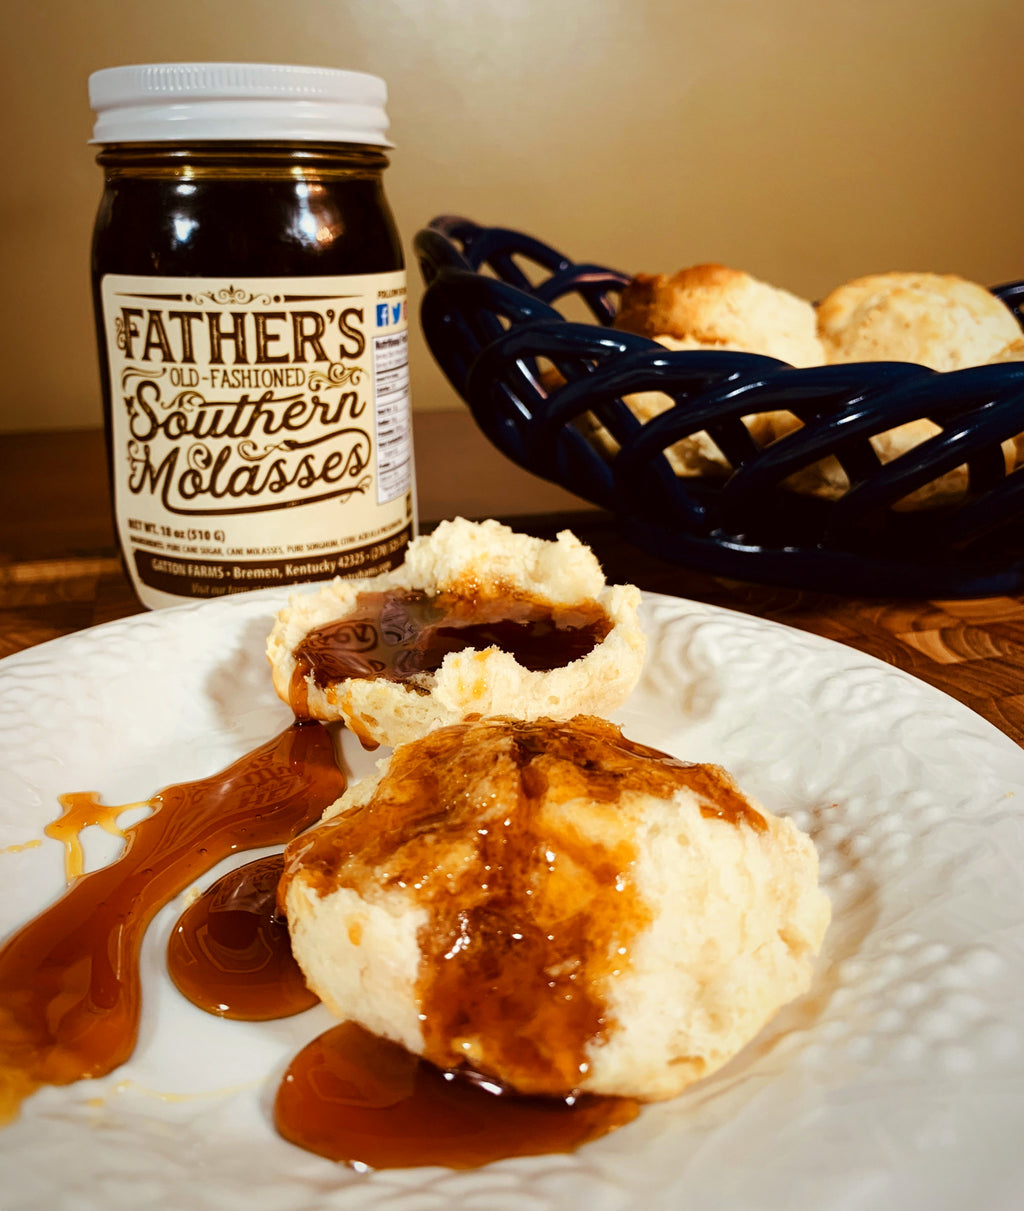 Old Fashioned Southern Molasses